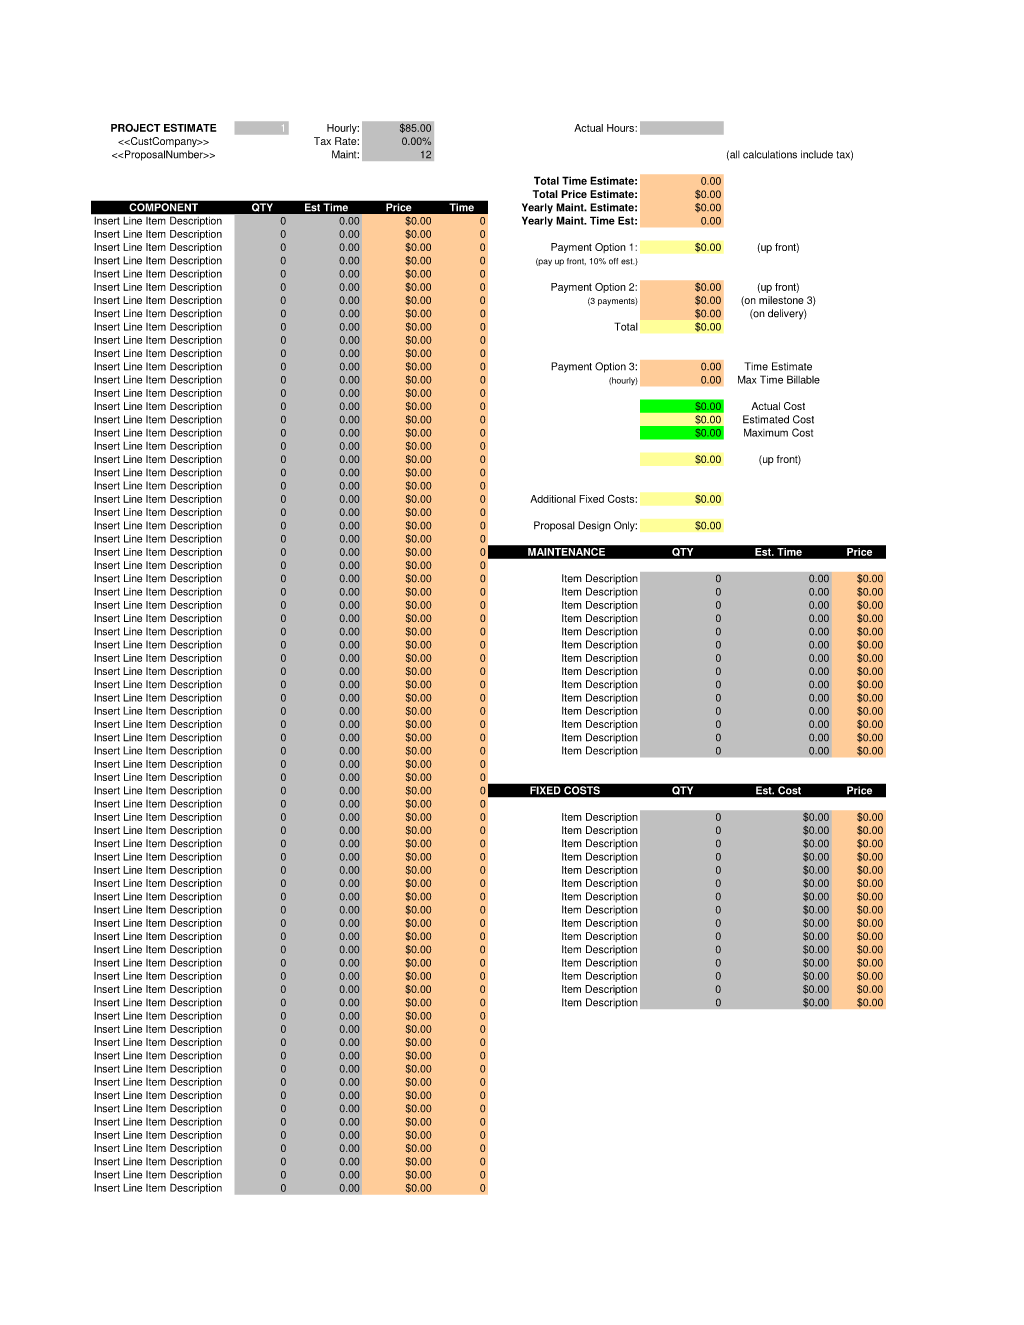 General Project Estimate Spreadsheet - This is a general purpose estimate spreadsheet. You can make copies of this spreadsheet for any purpose. The spreadsheet calculations are already setup for summarizing lists of line items and breaking the totals into multiple payment plan options. A comprehensive collection of estimate spreadsheets available from ProposalKit.com (come over, learn more and Like our Facebook page to get a 20% discount)